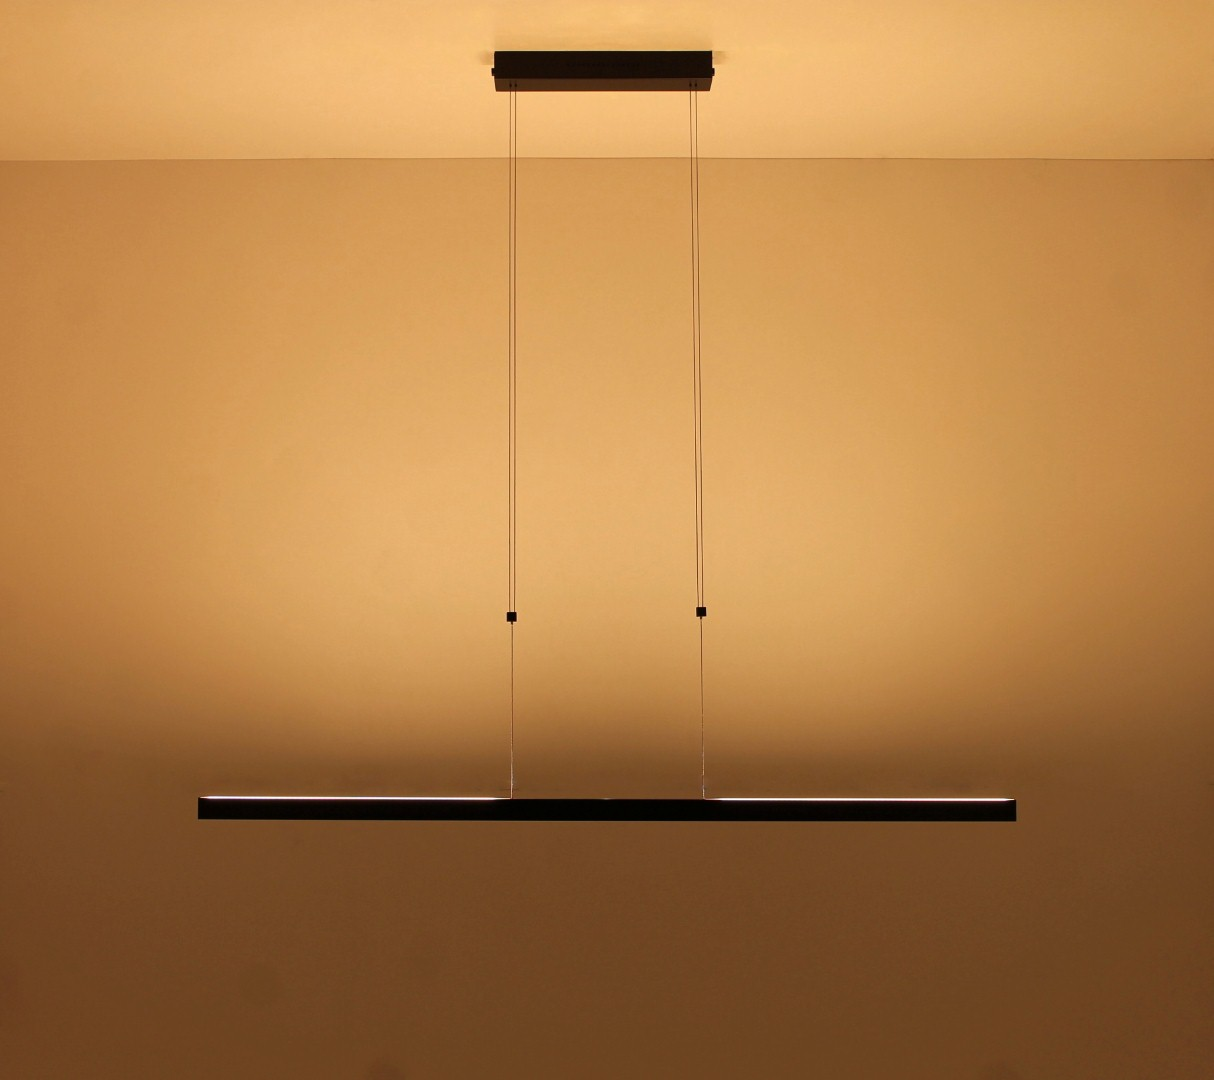 lampen hanglamp led design zwart 128cm hanglamp. Black Bedroom Furniture Sets. Home Design Ideas